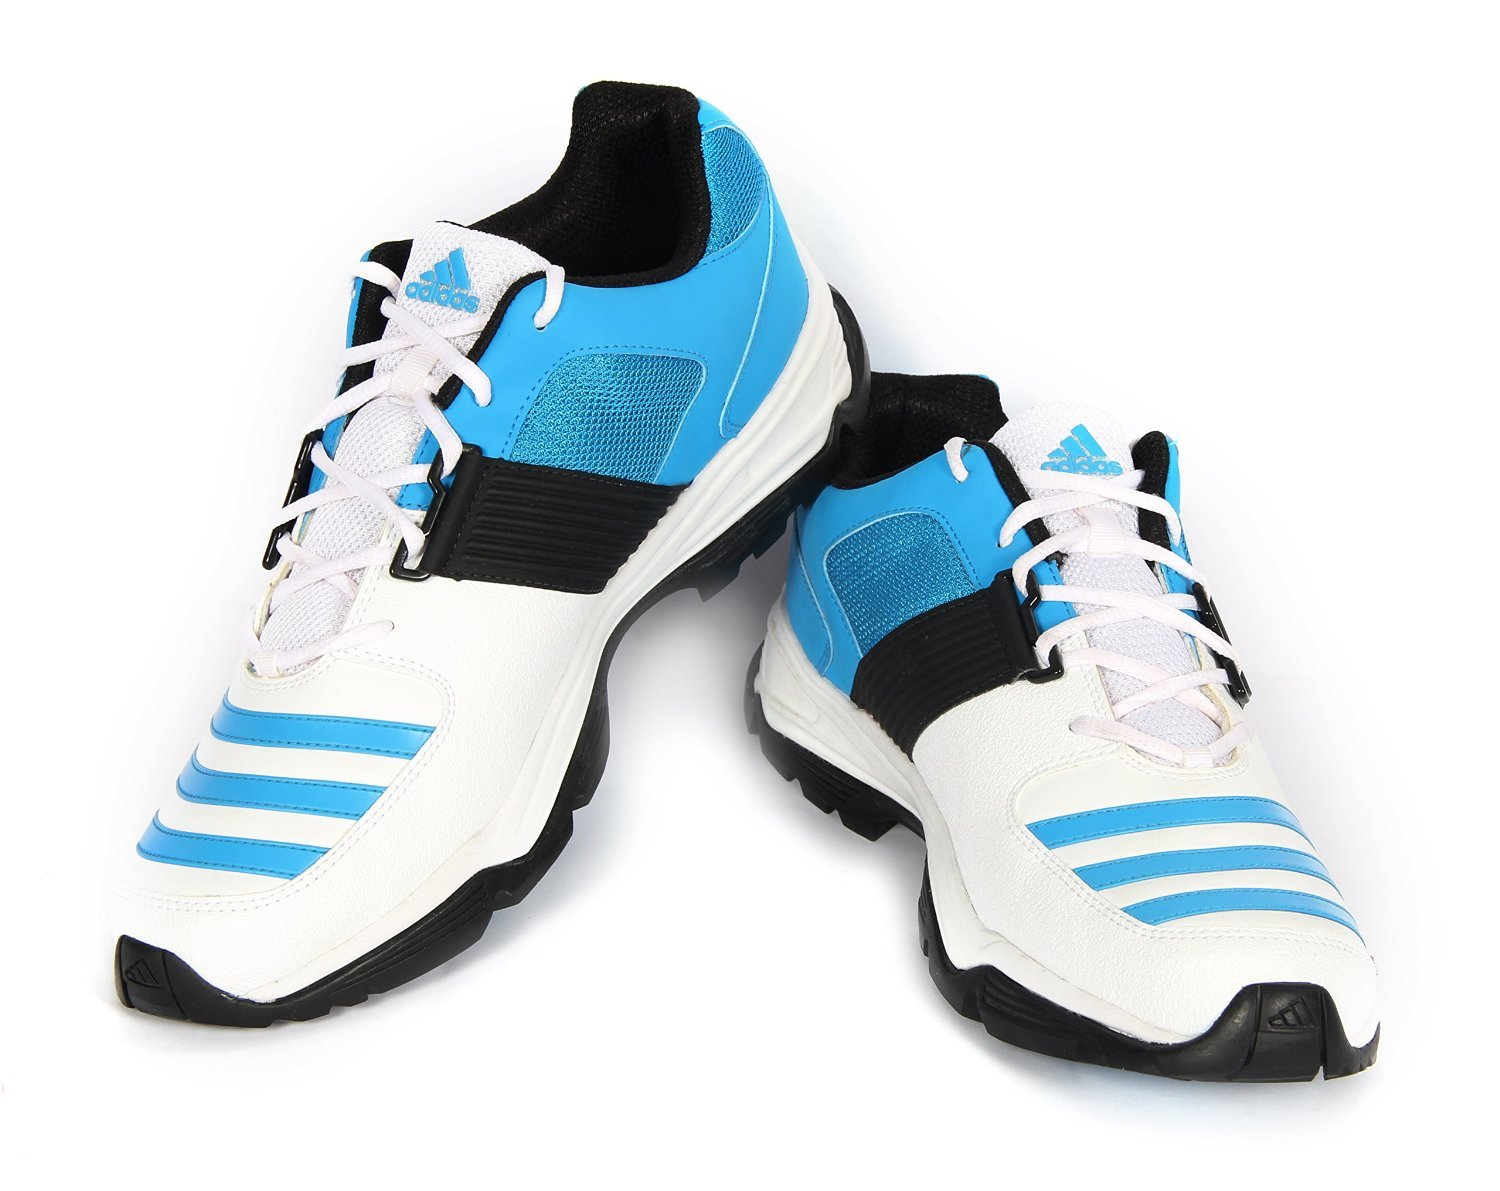 adidas cricket shoes rubber spikes off 66% - www.usushimd.com